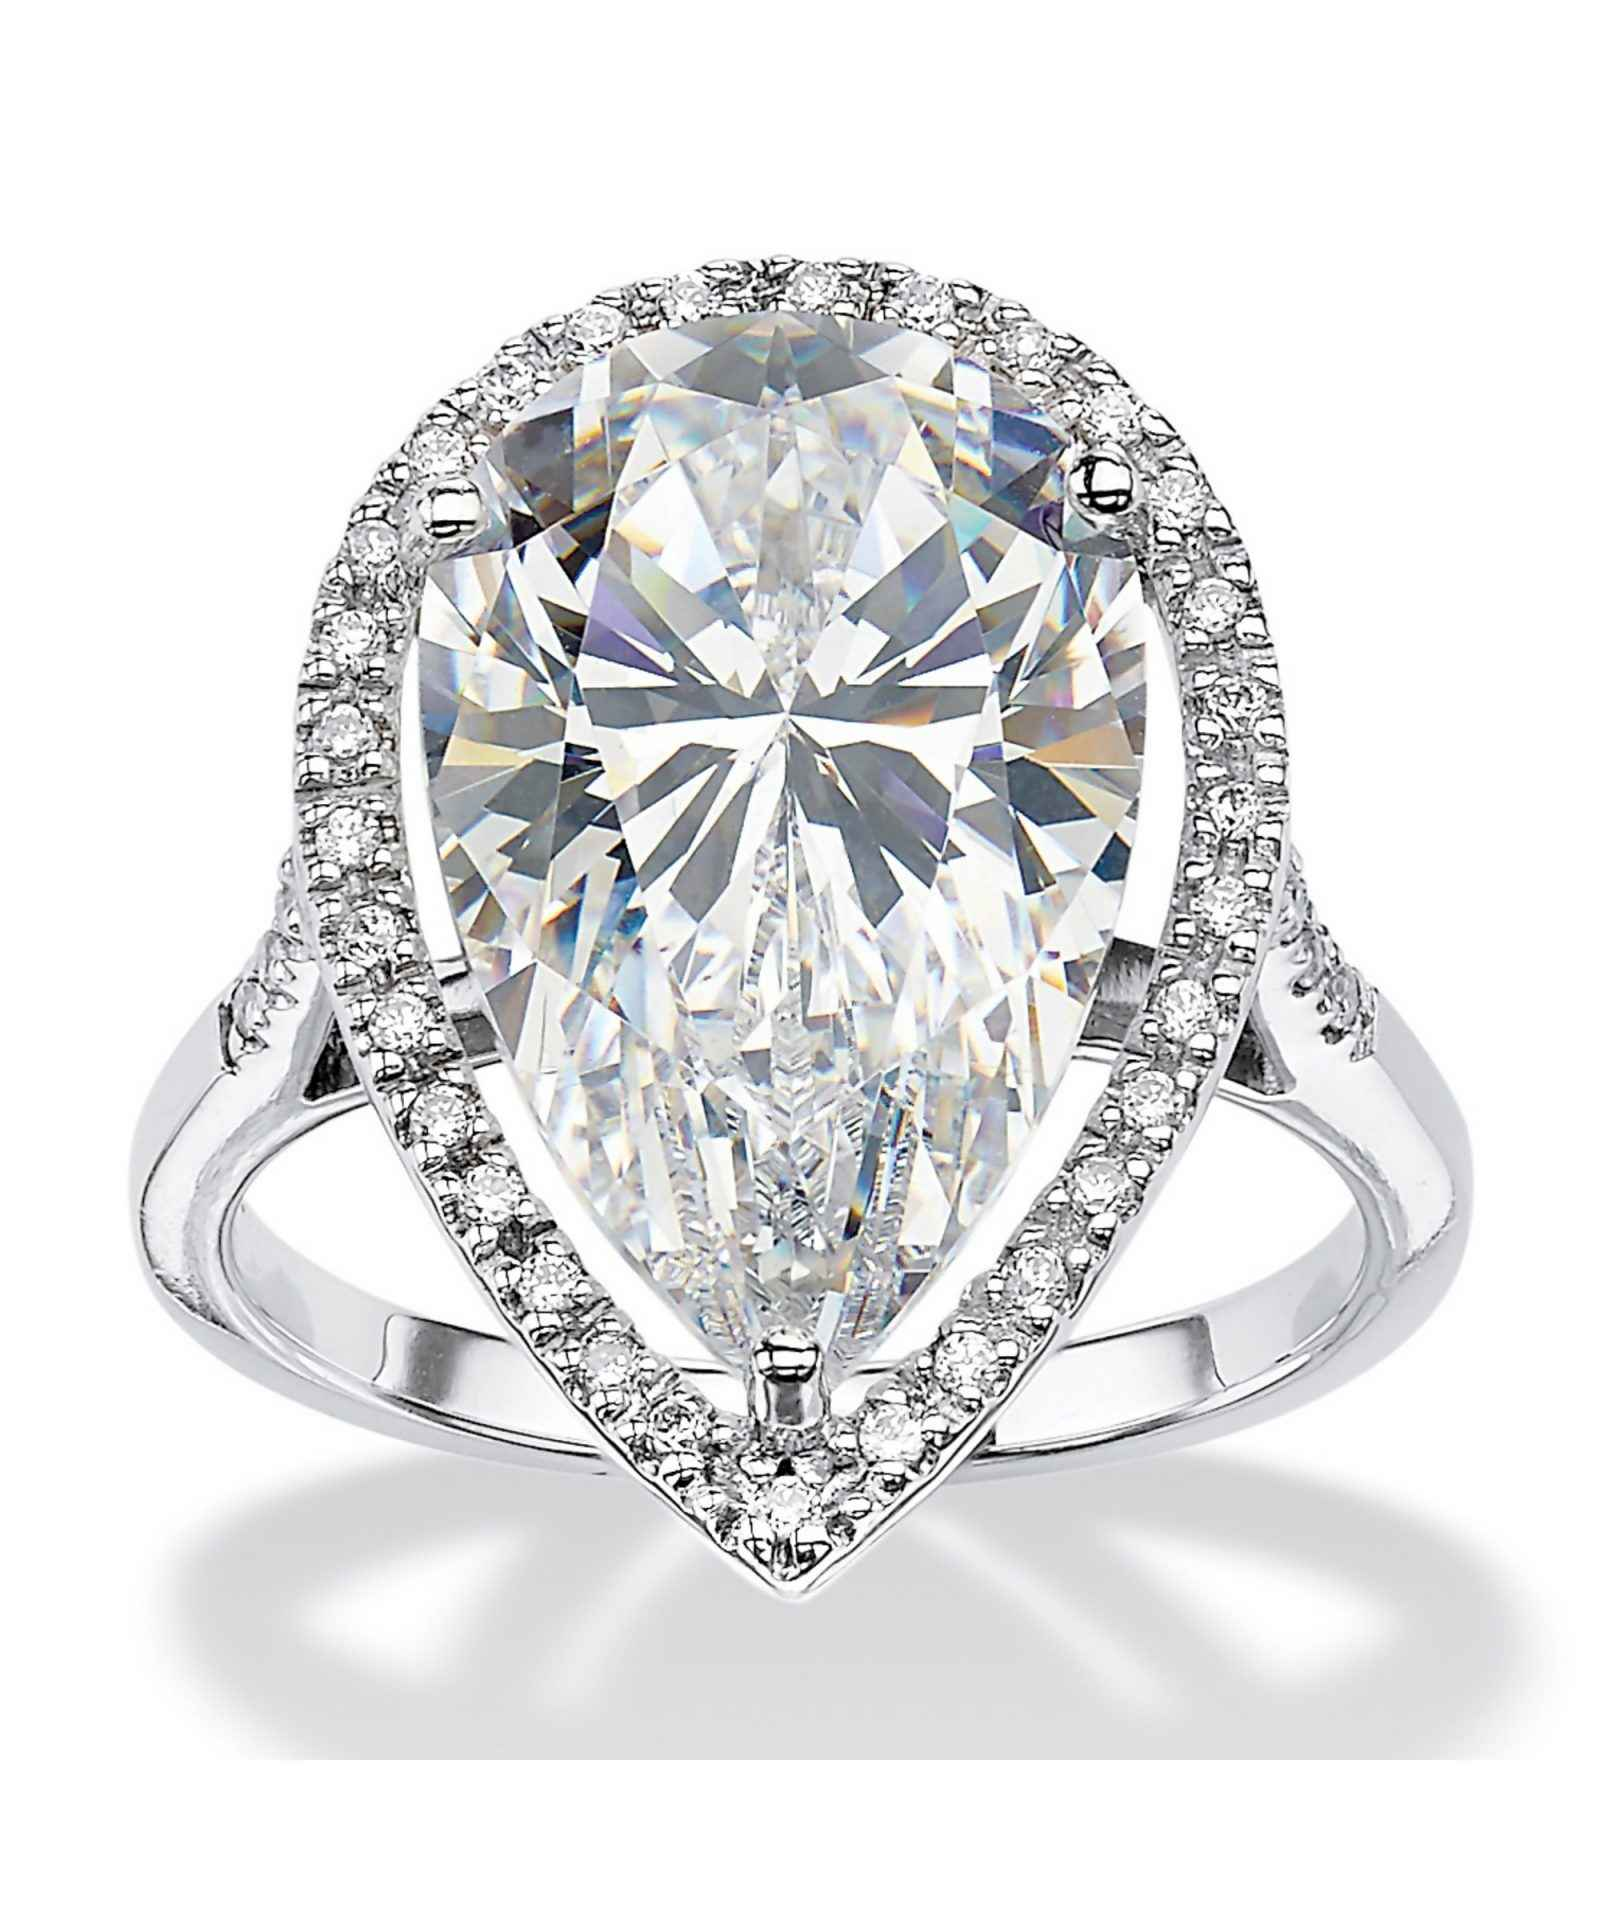 18ct White Gold Pear Shaped Diamond Engagement Ring With Halo Centre D 3cts Tighe Jewellery Studio